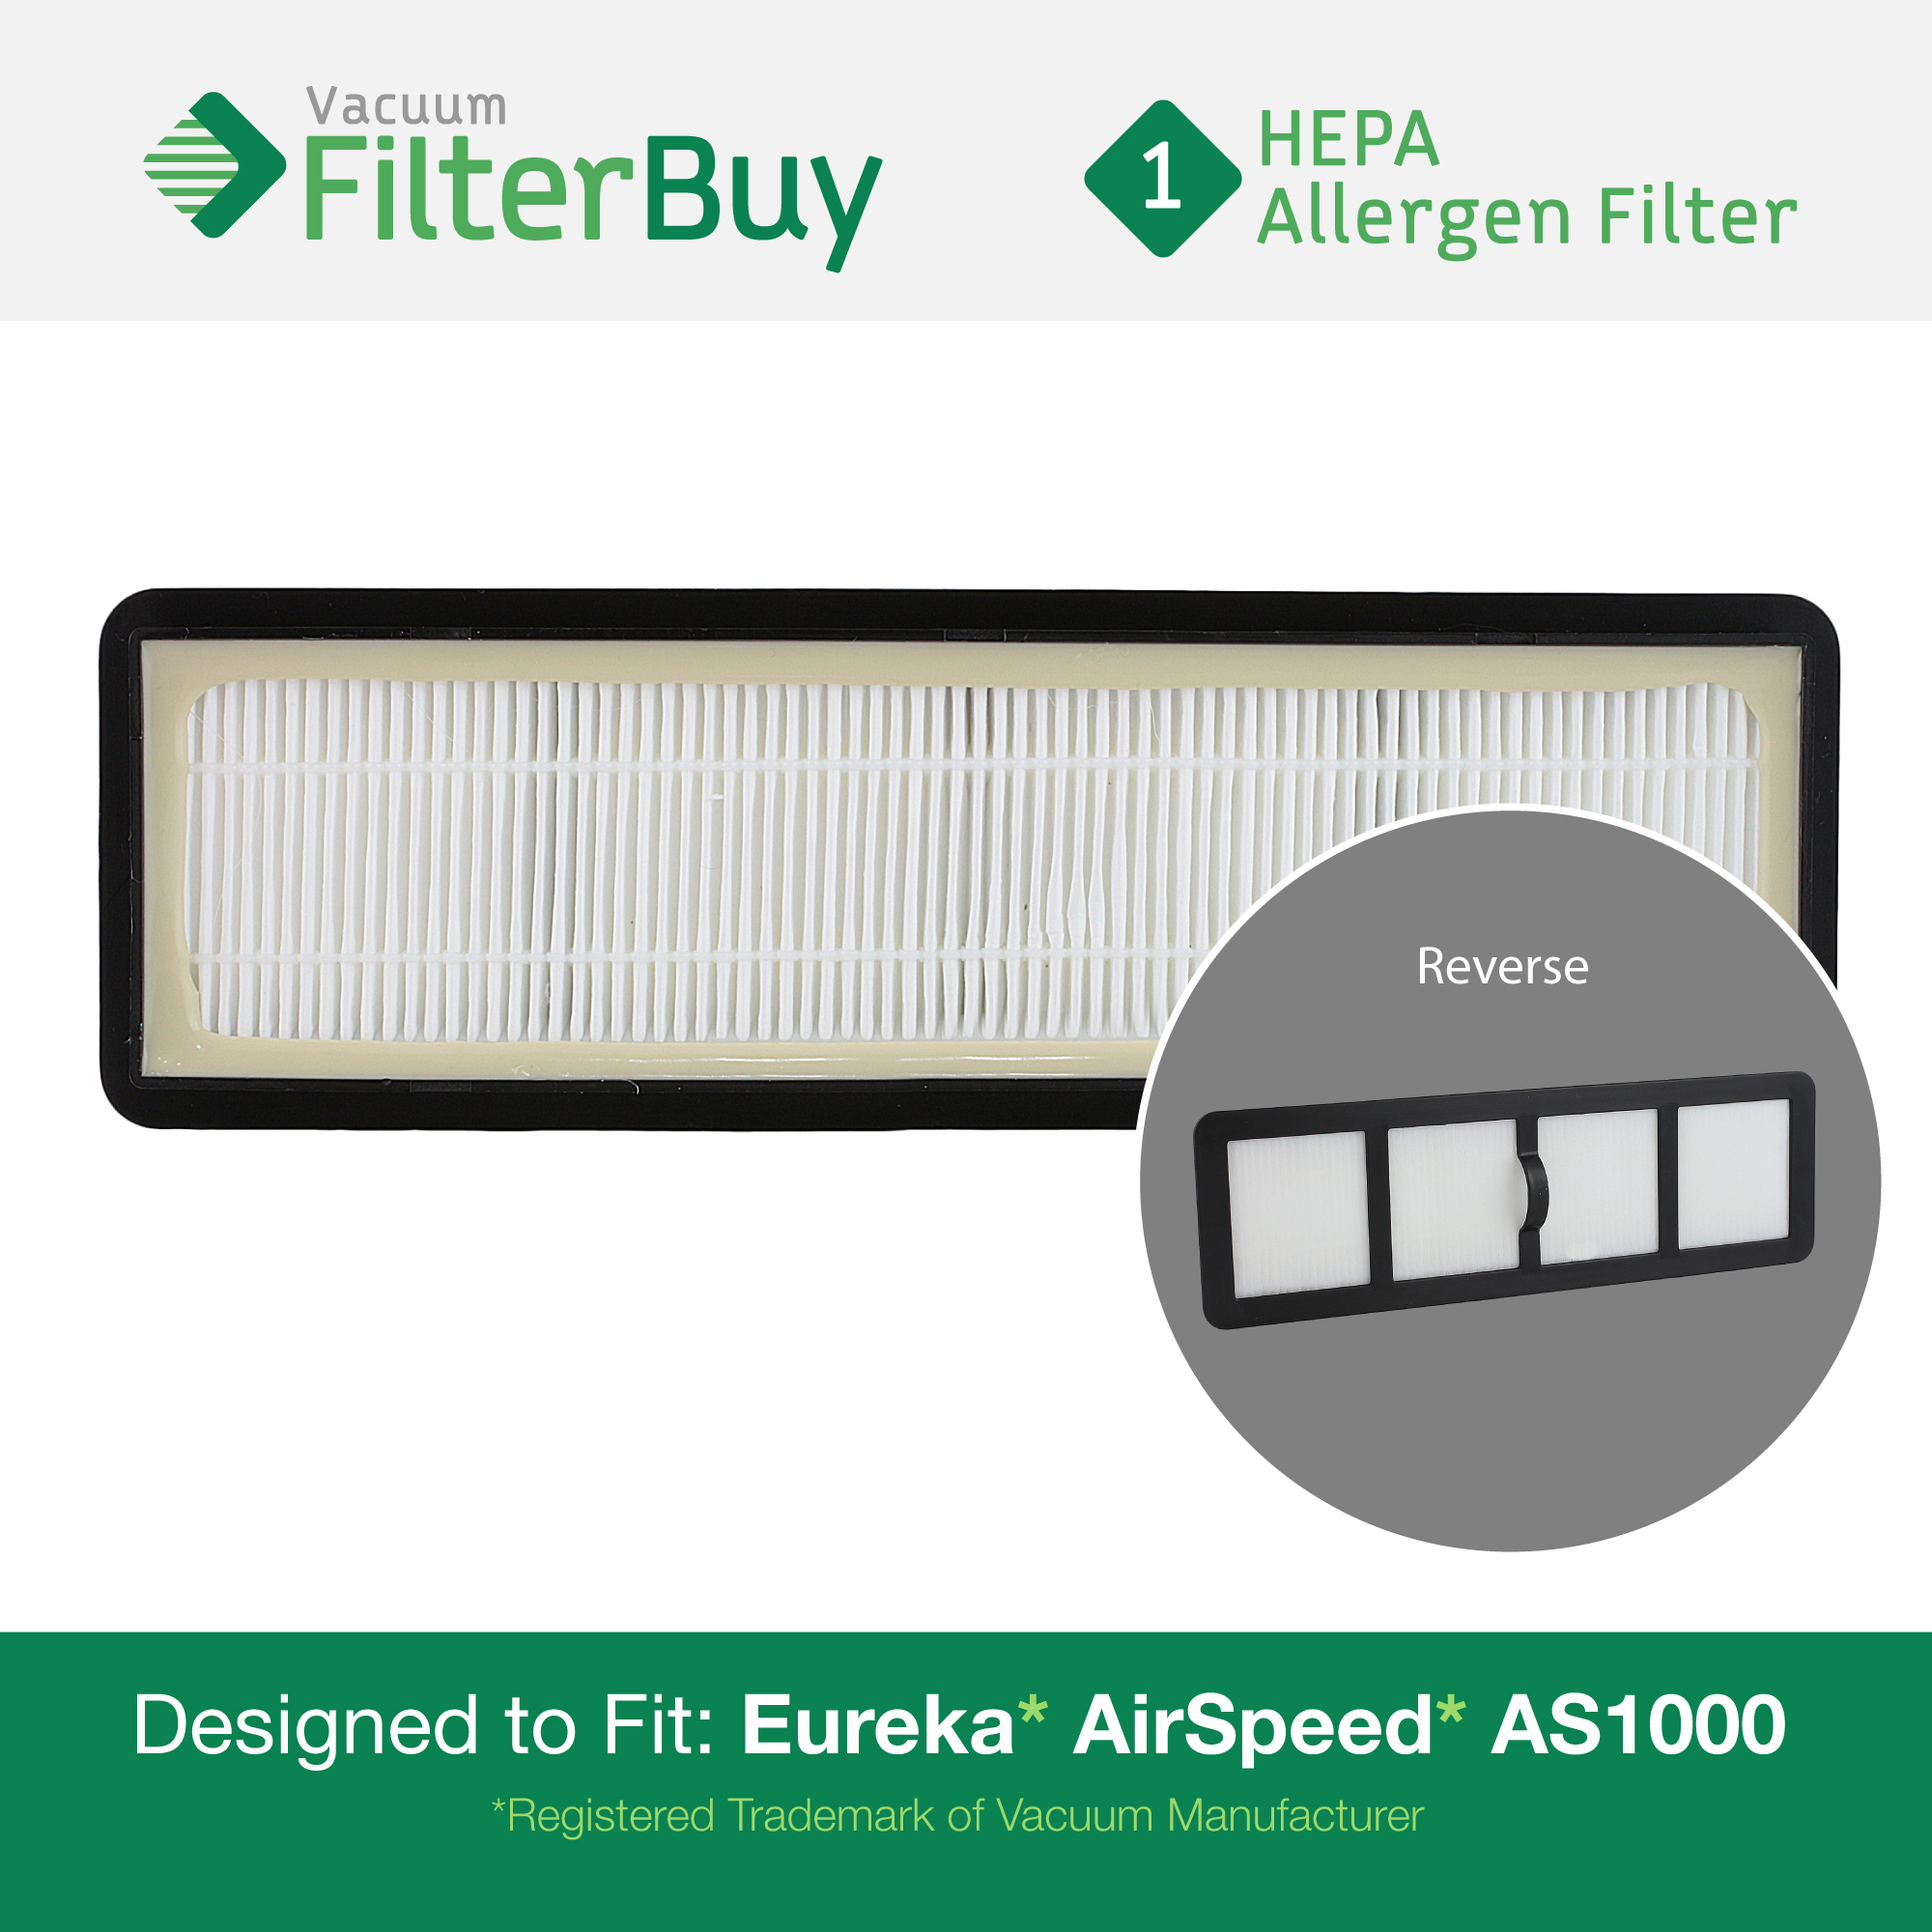 Eureka Airspeed EF6 (EF-6) HEPA Replacement Filter, Part # 83091-1. Designed by FilterBuy to fit Eureka Airspeed AS1000 Upright Vacuums